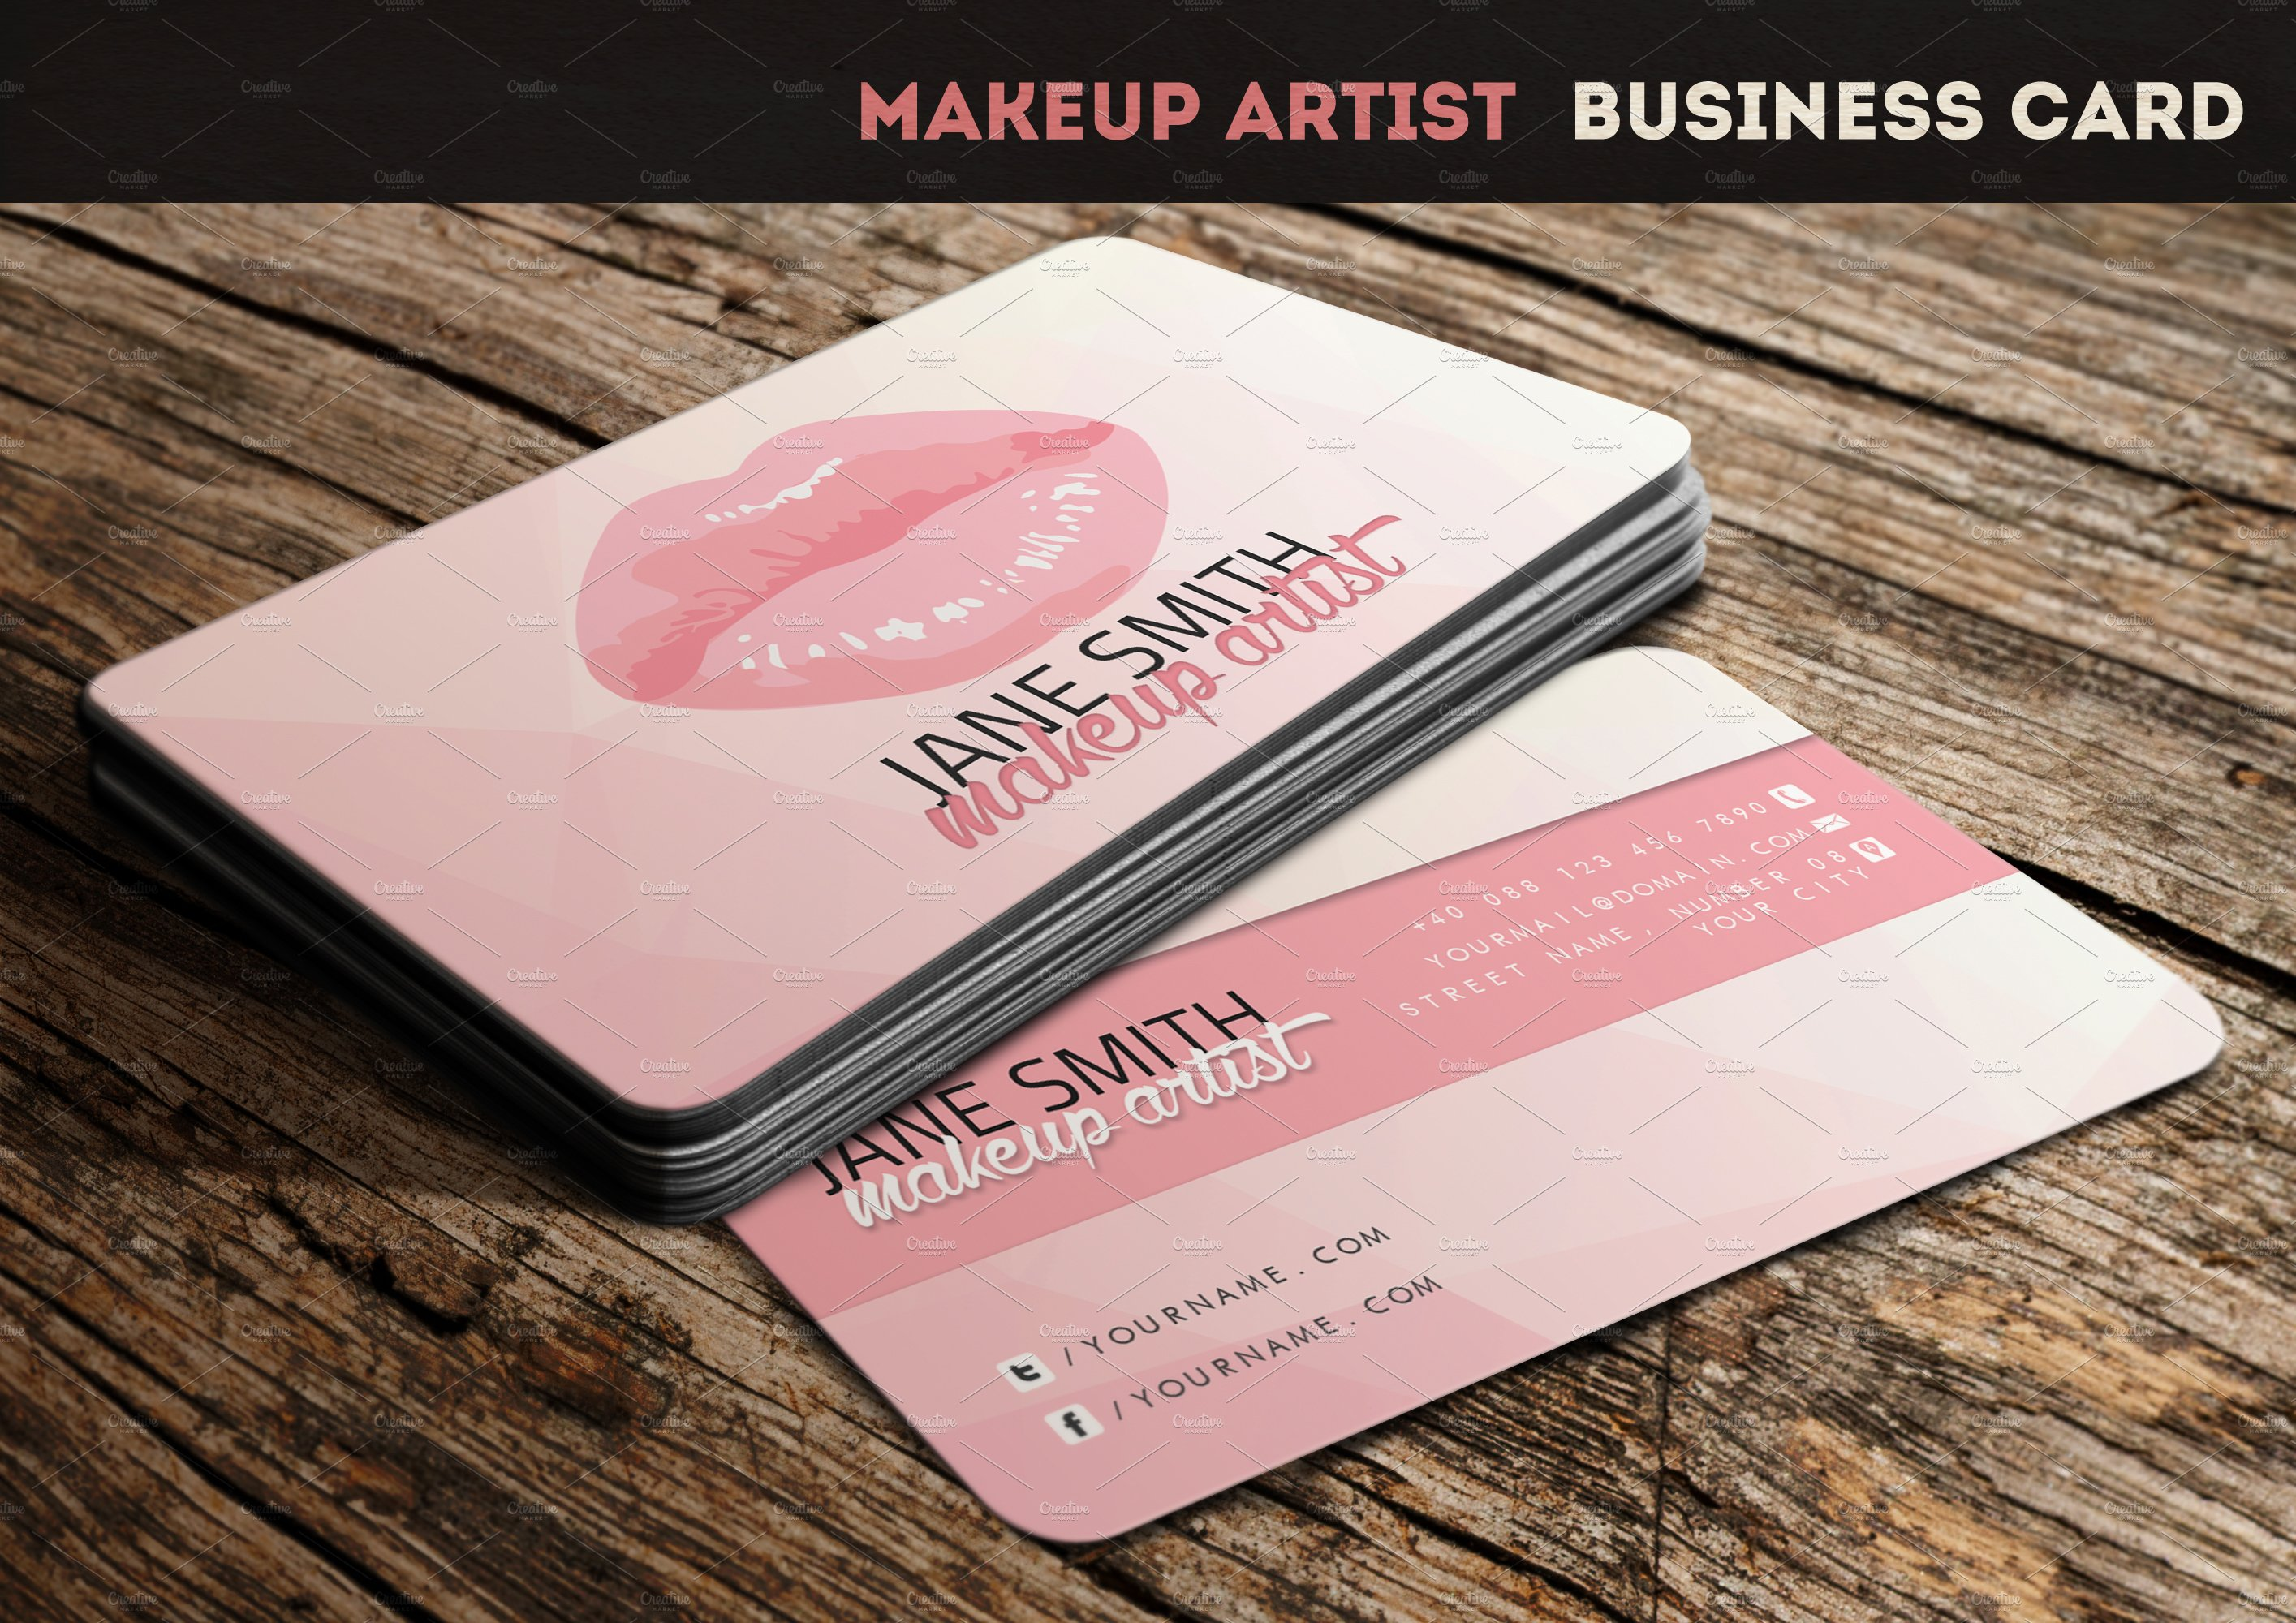 Makeup artist business card business card templates creative market flashek Images